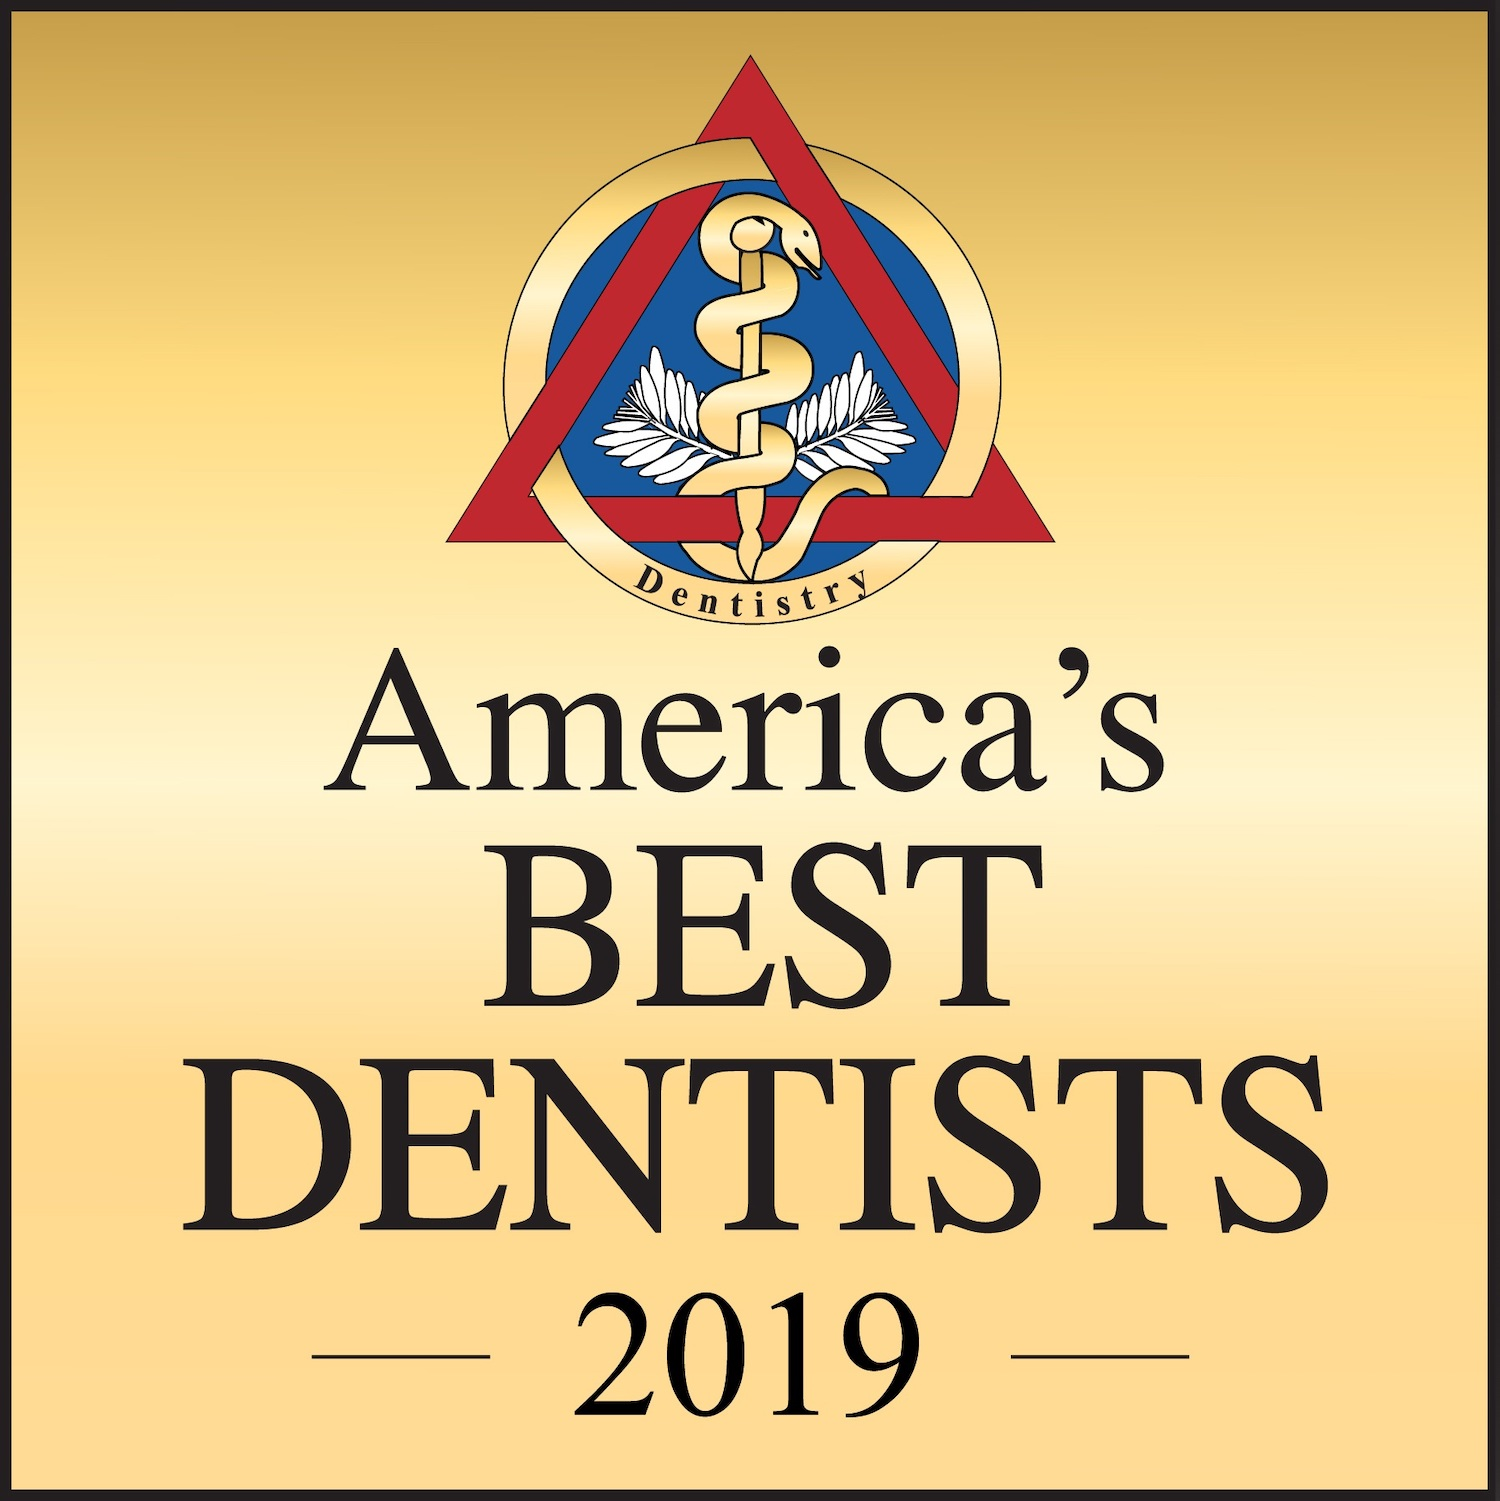 East End Dentistry | News | Dr. Keegan Named One of America's Best ...